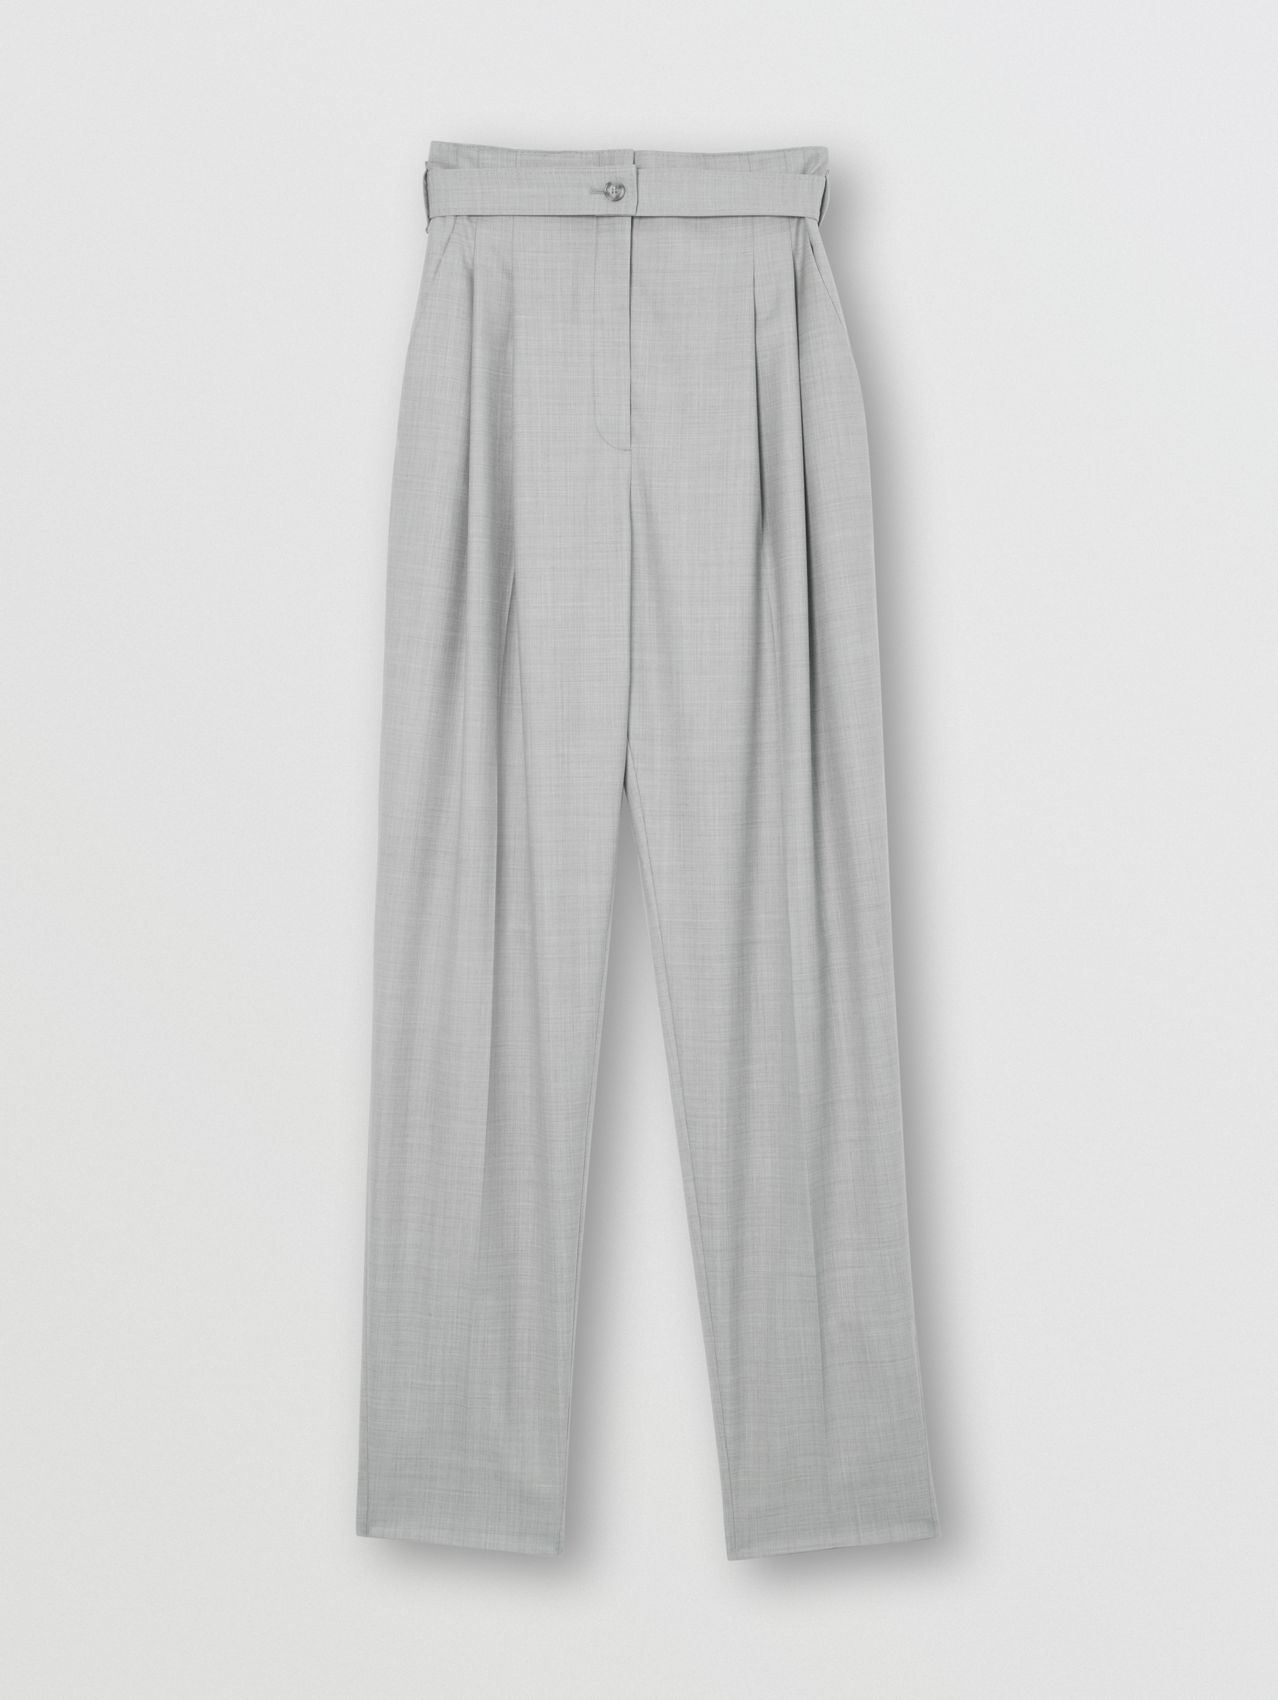 Cut-out Detail Wool Tailored Trousers in Heather Melange